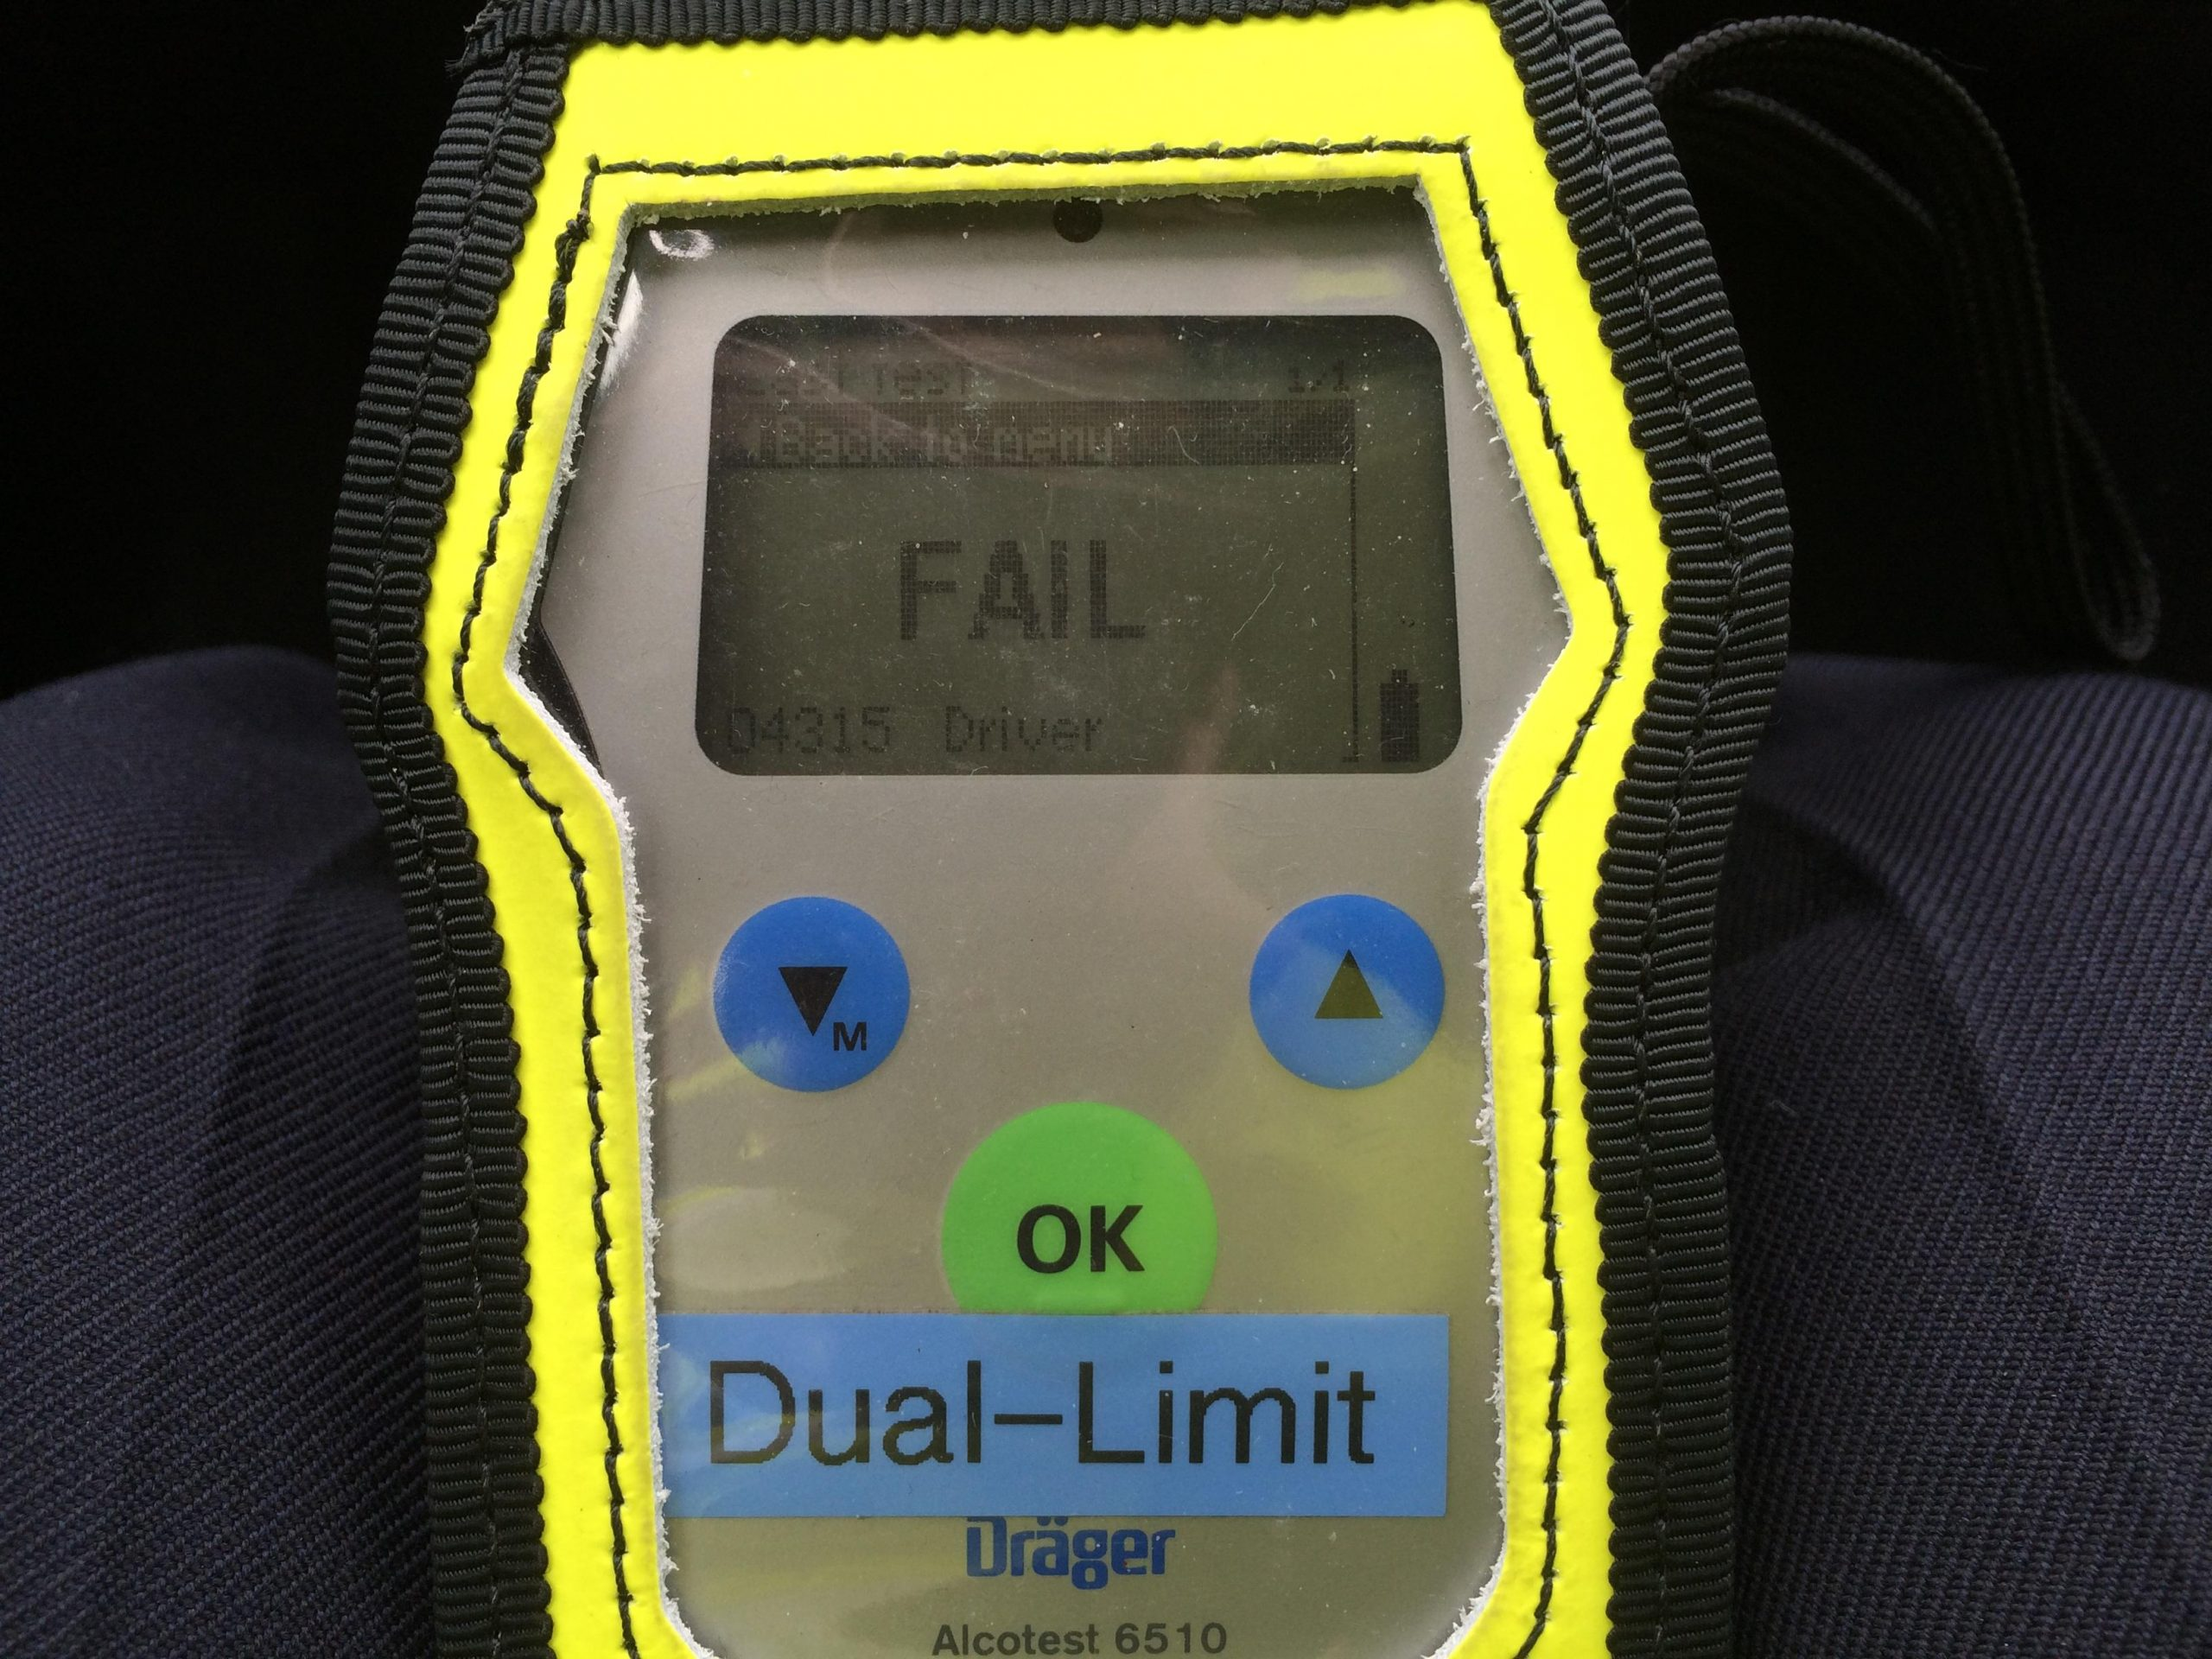 Almost 800 arrested for drink driving last month